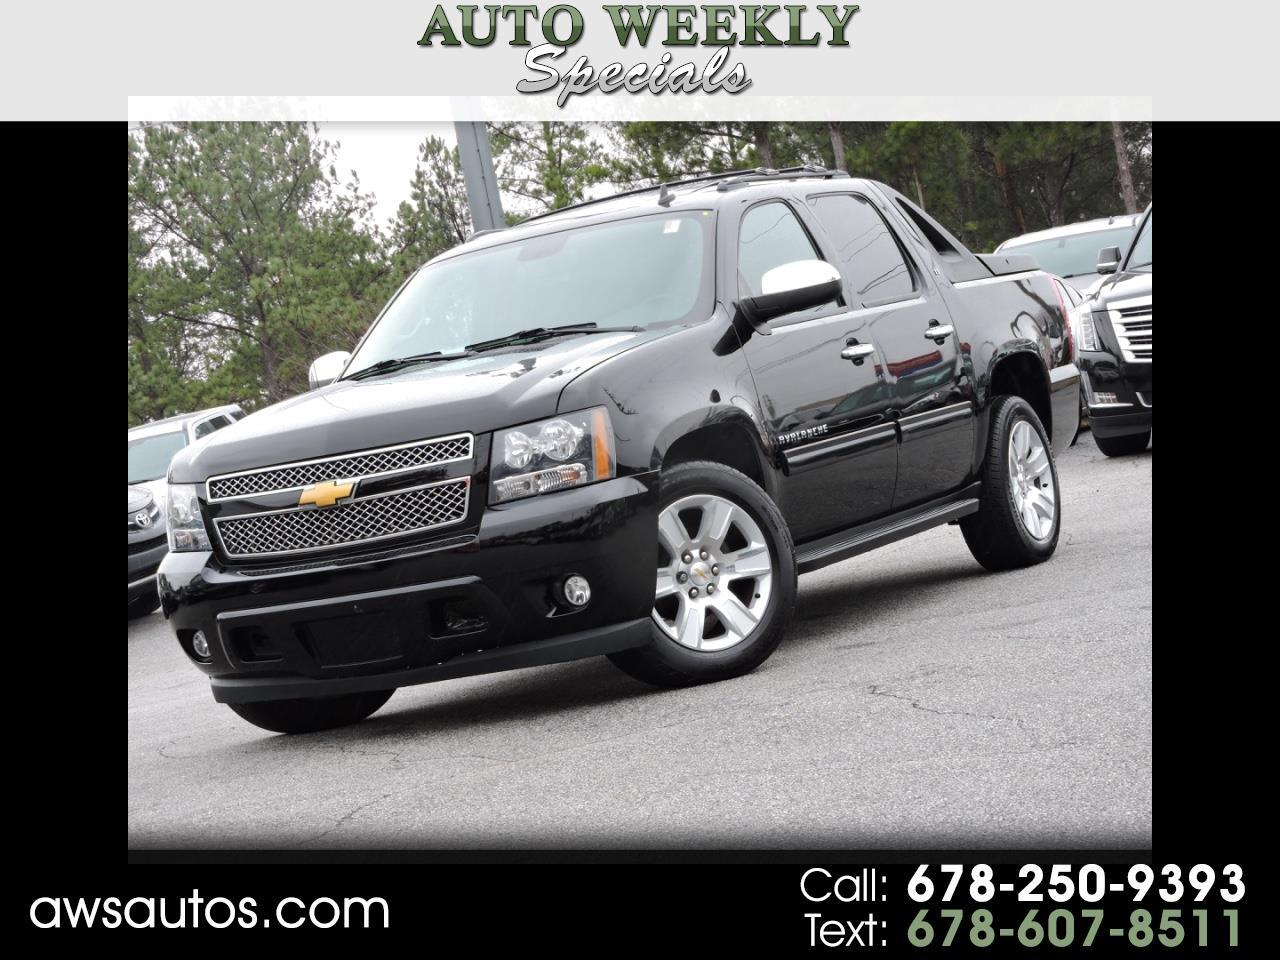 Chevrolet Avalanche 2WD Crew Cab LT 2012